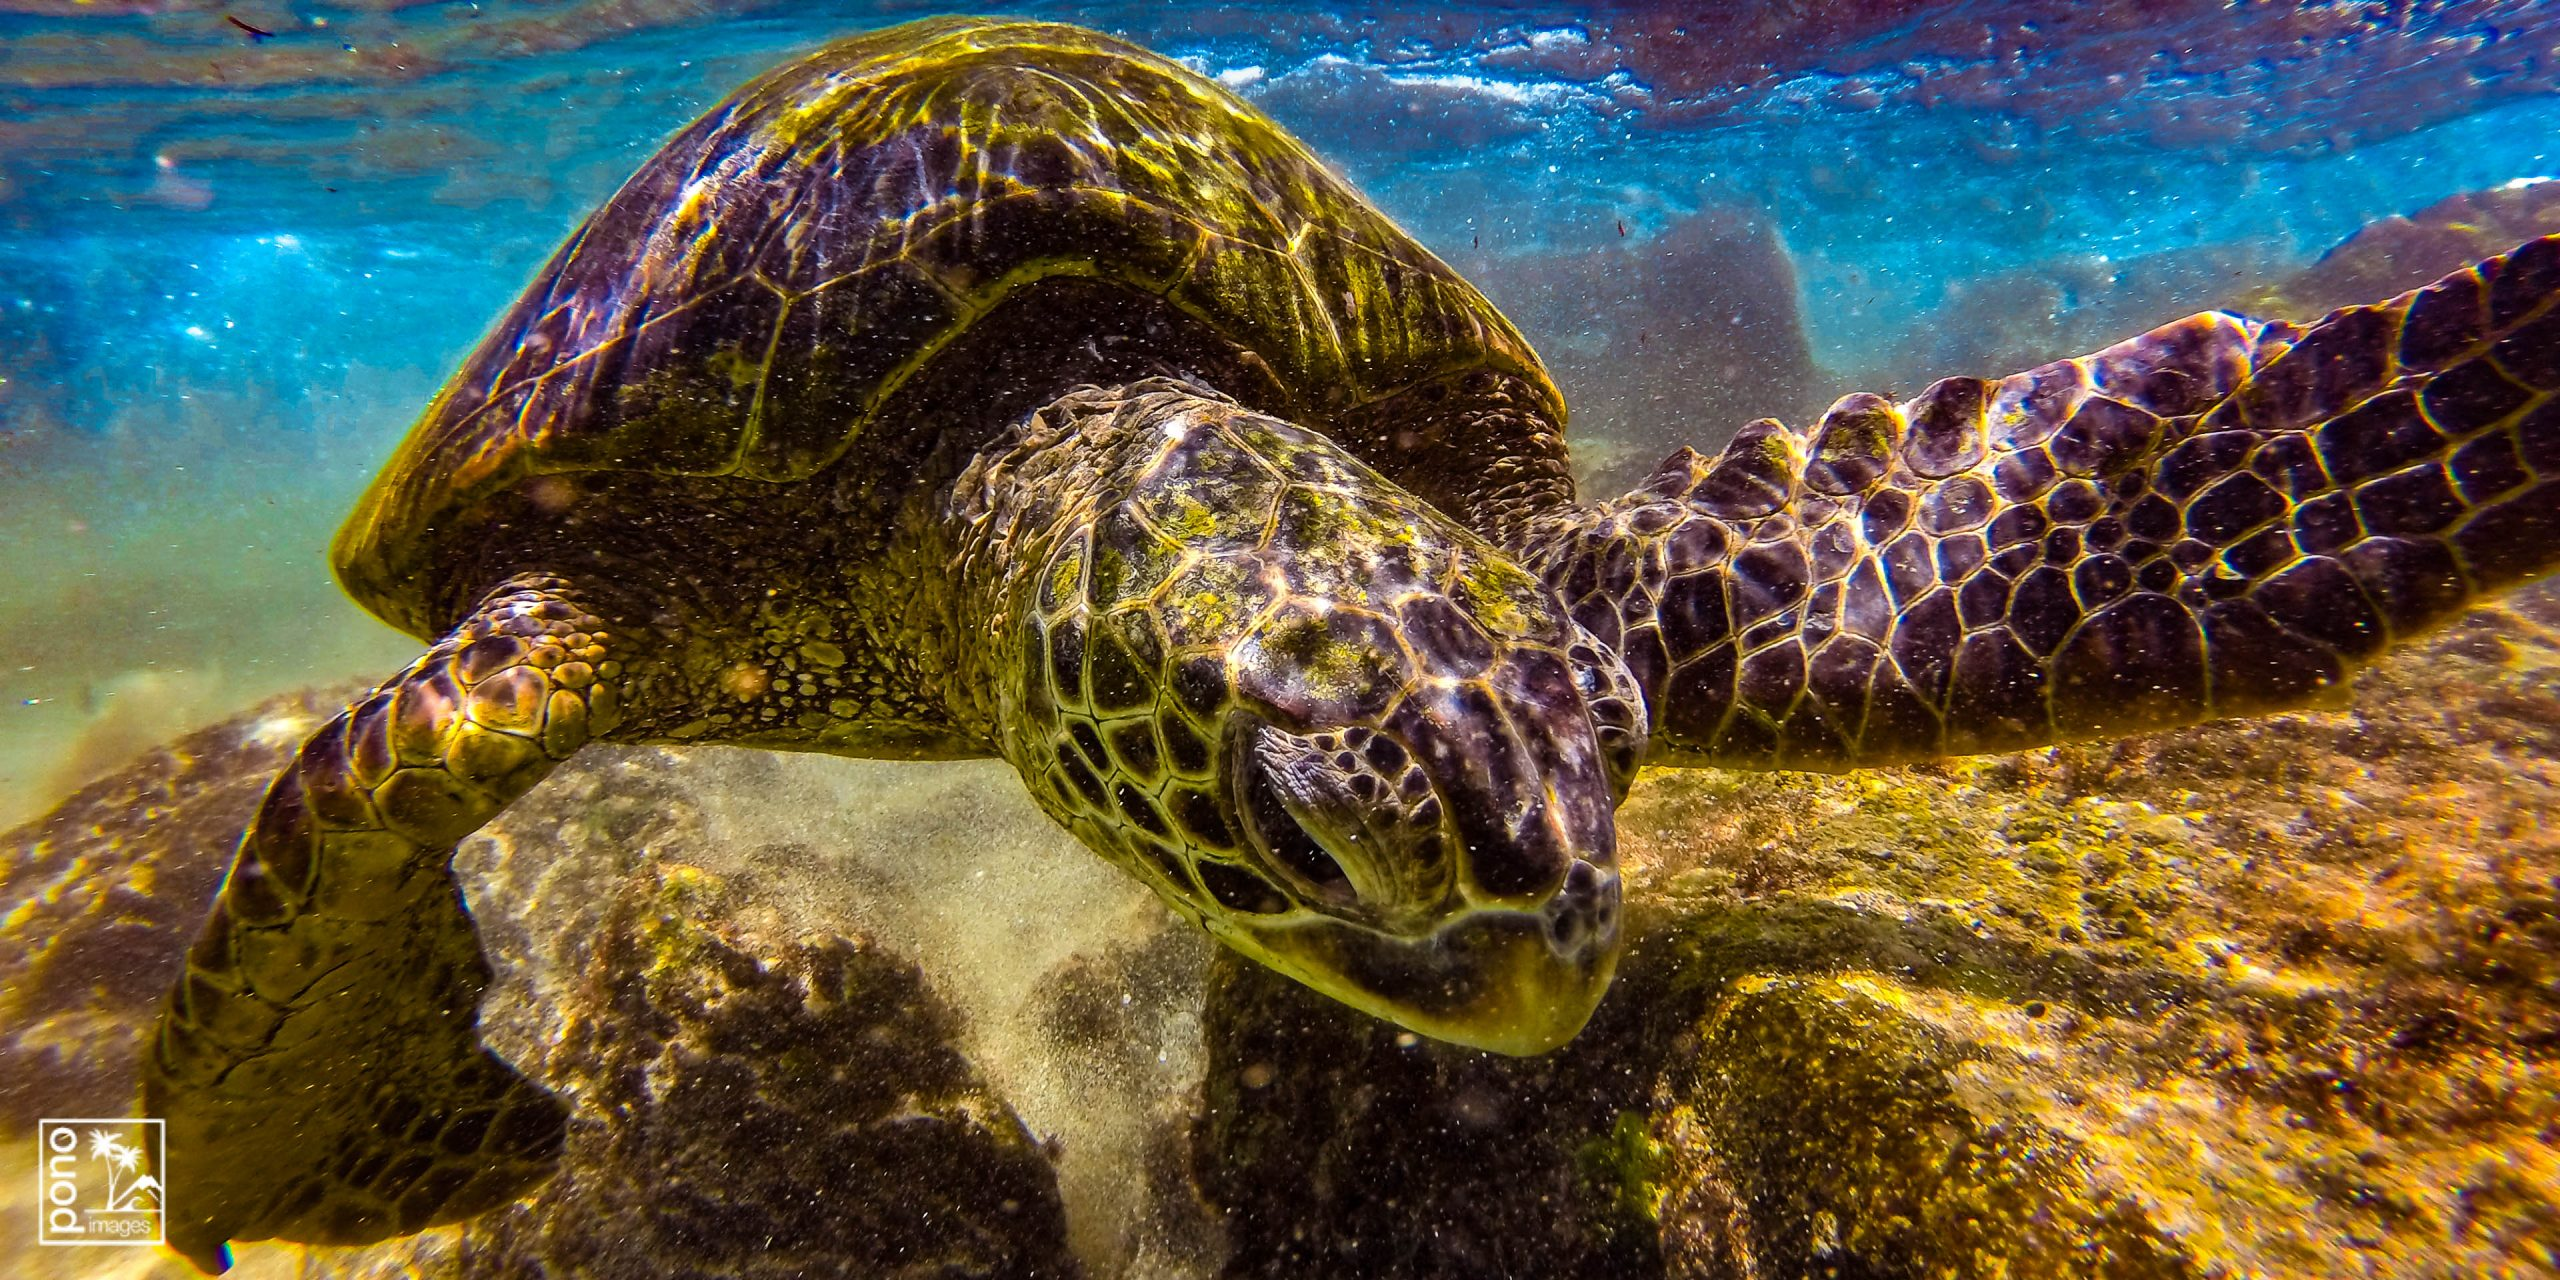 Exploring Honu by Pono Images